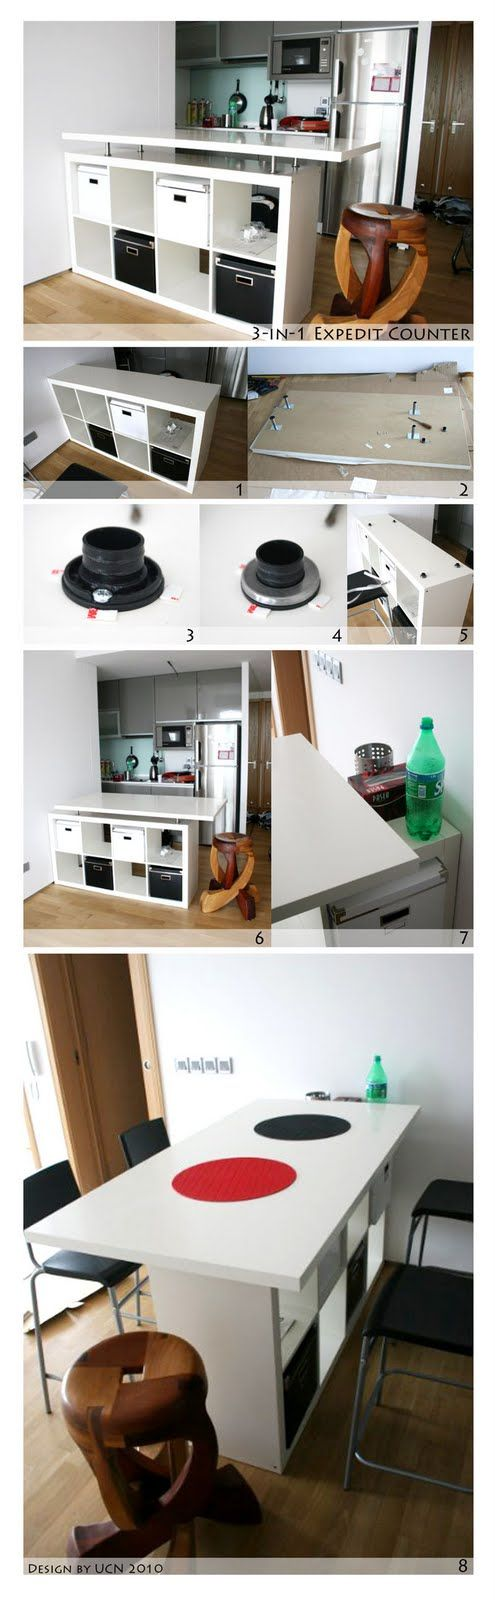 HOME: 3-in-1 Expedit Kitchen Counter | Organization decluttering and ...